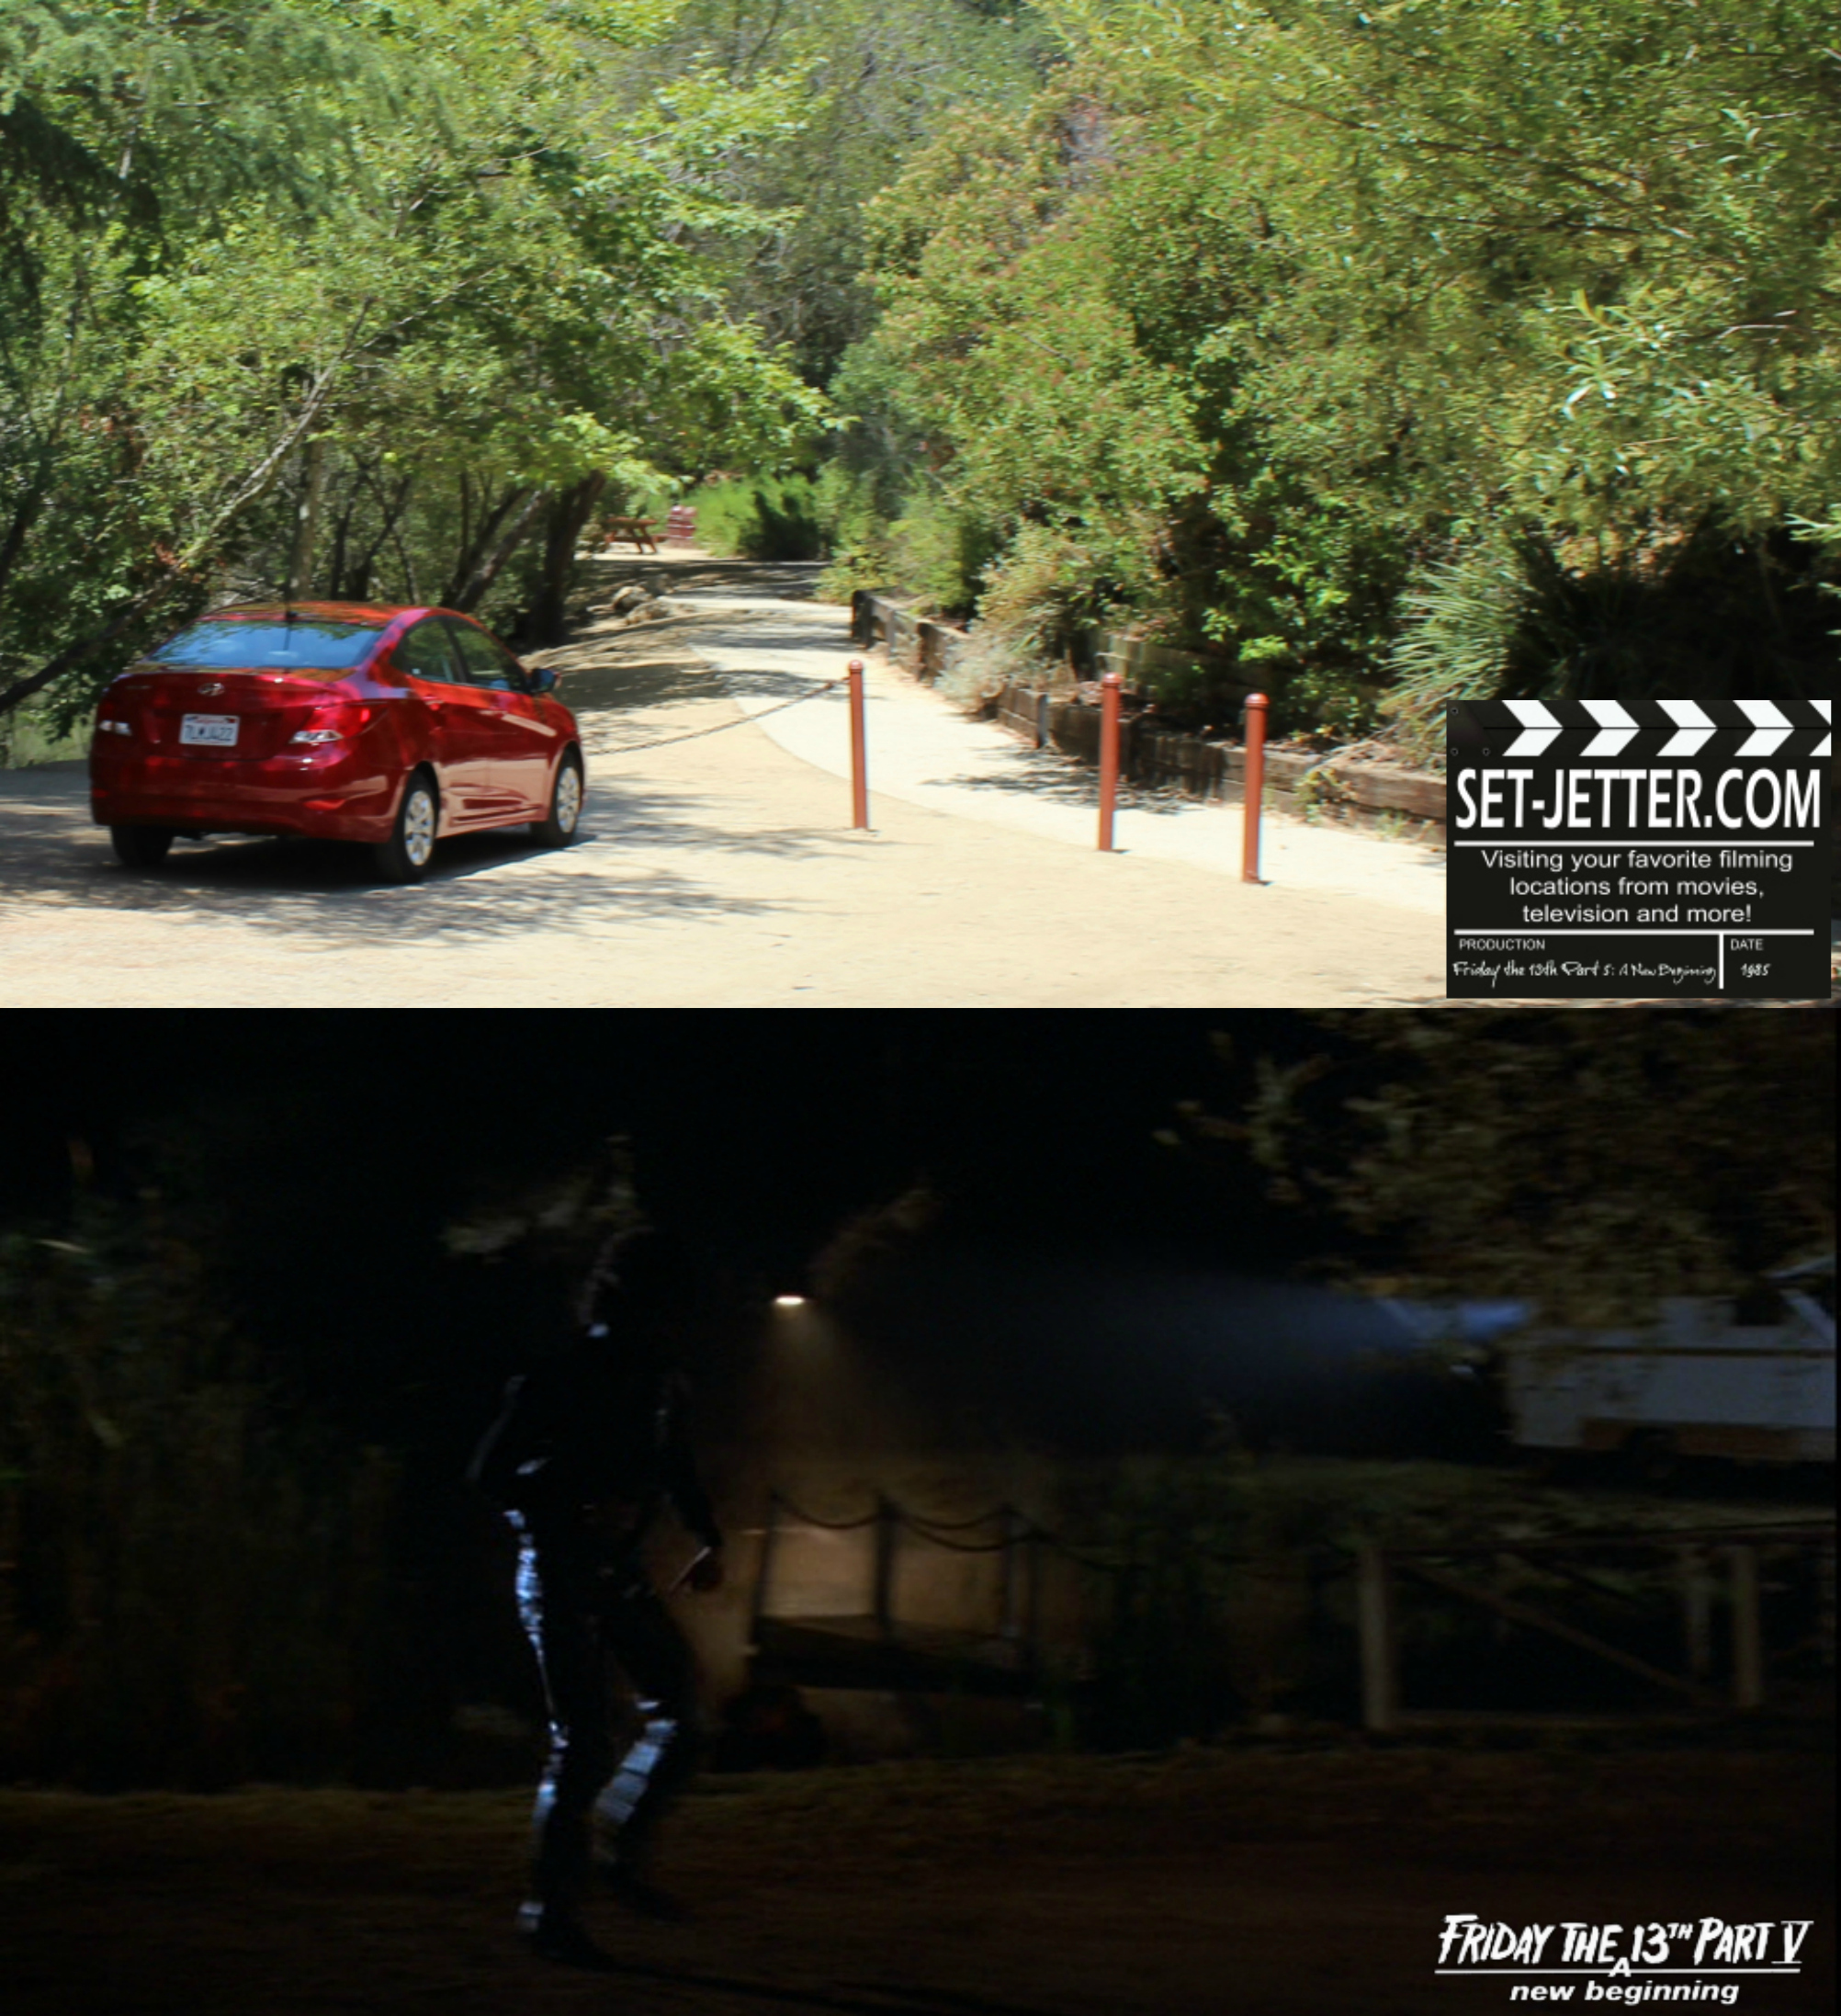 Friday the 13th Part V comparison 45.jpg